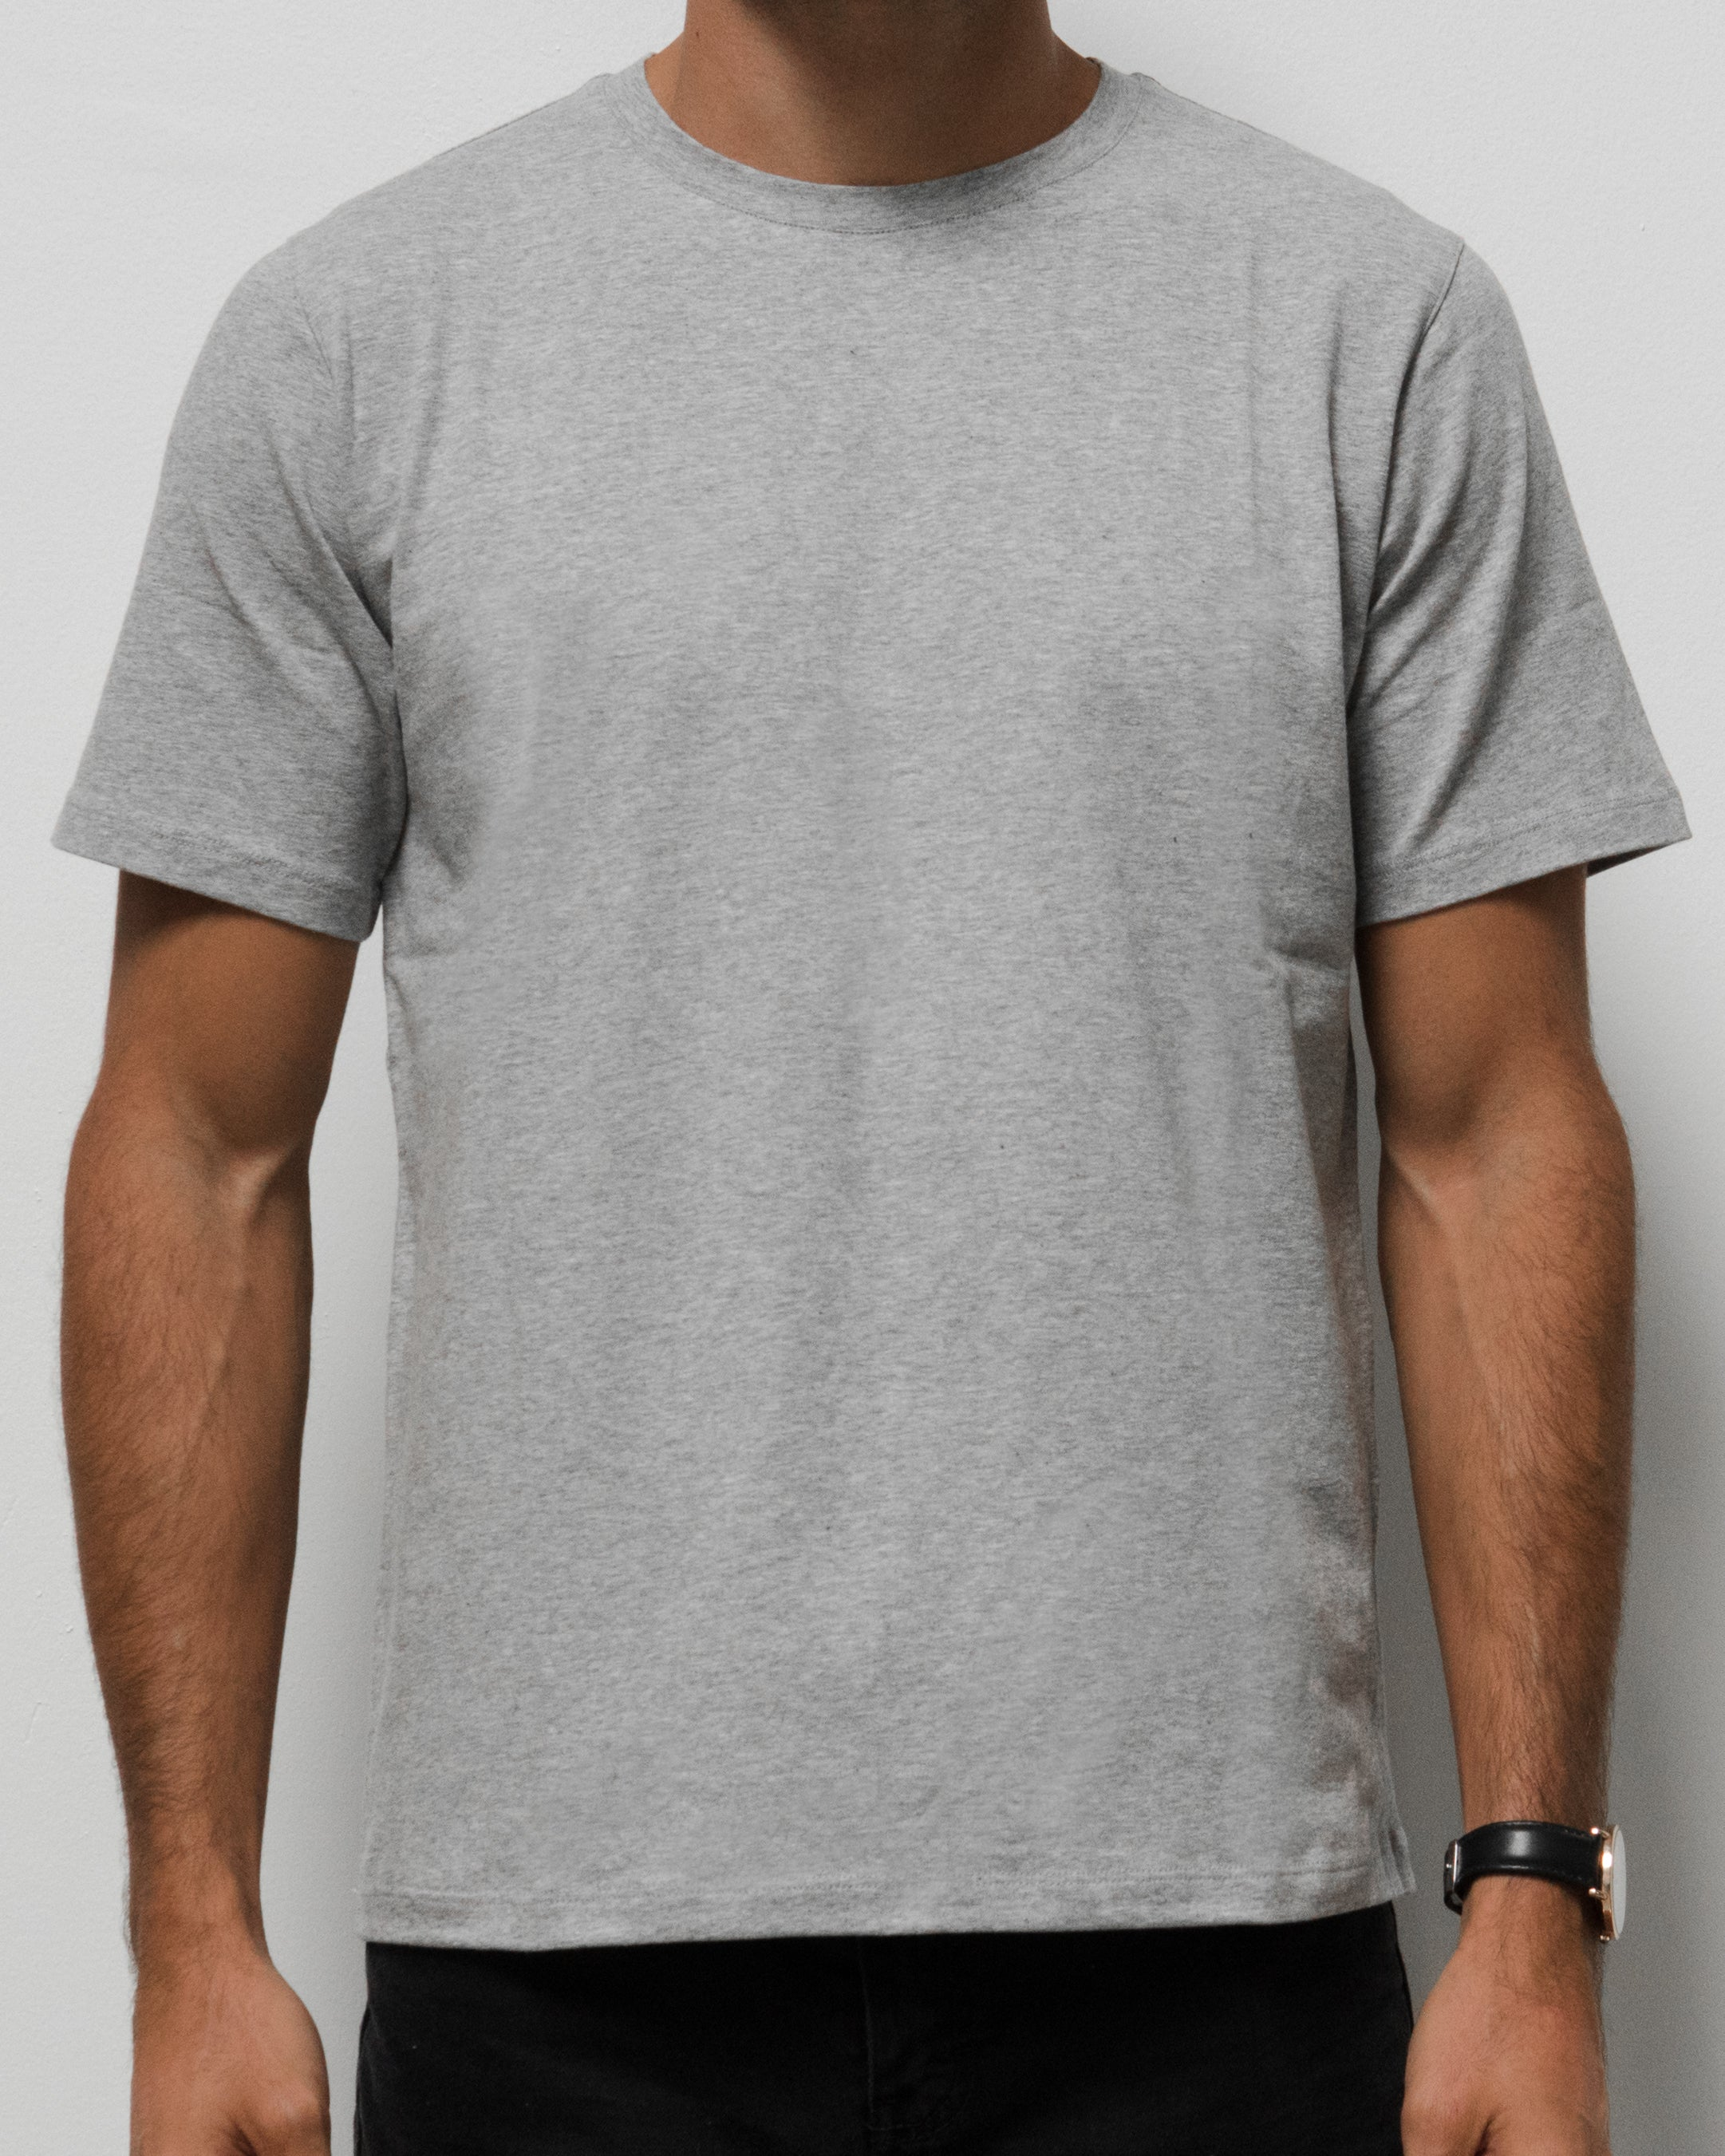 Crew Neck T Shirt - Grey